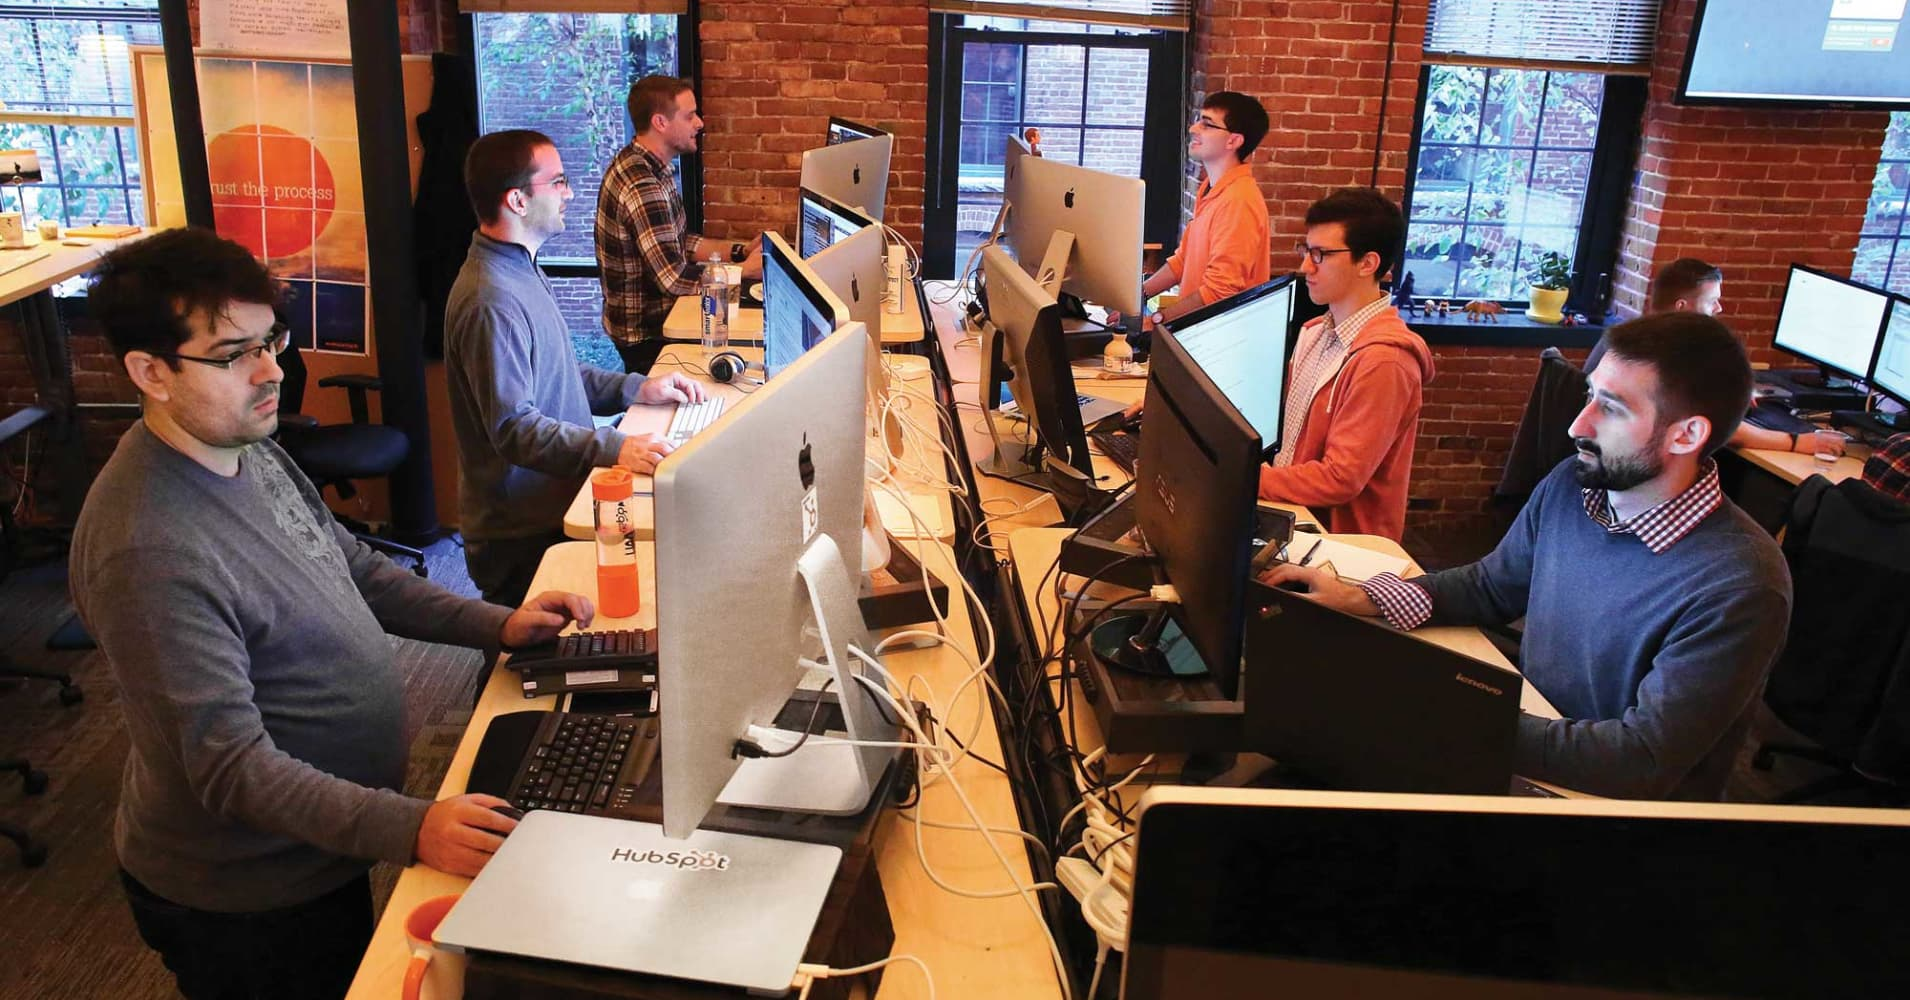 HubSpot employees work at their standing desks in Cambridge, Mass.